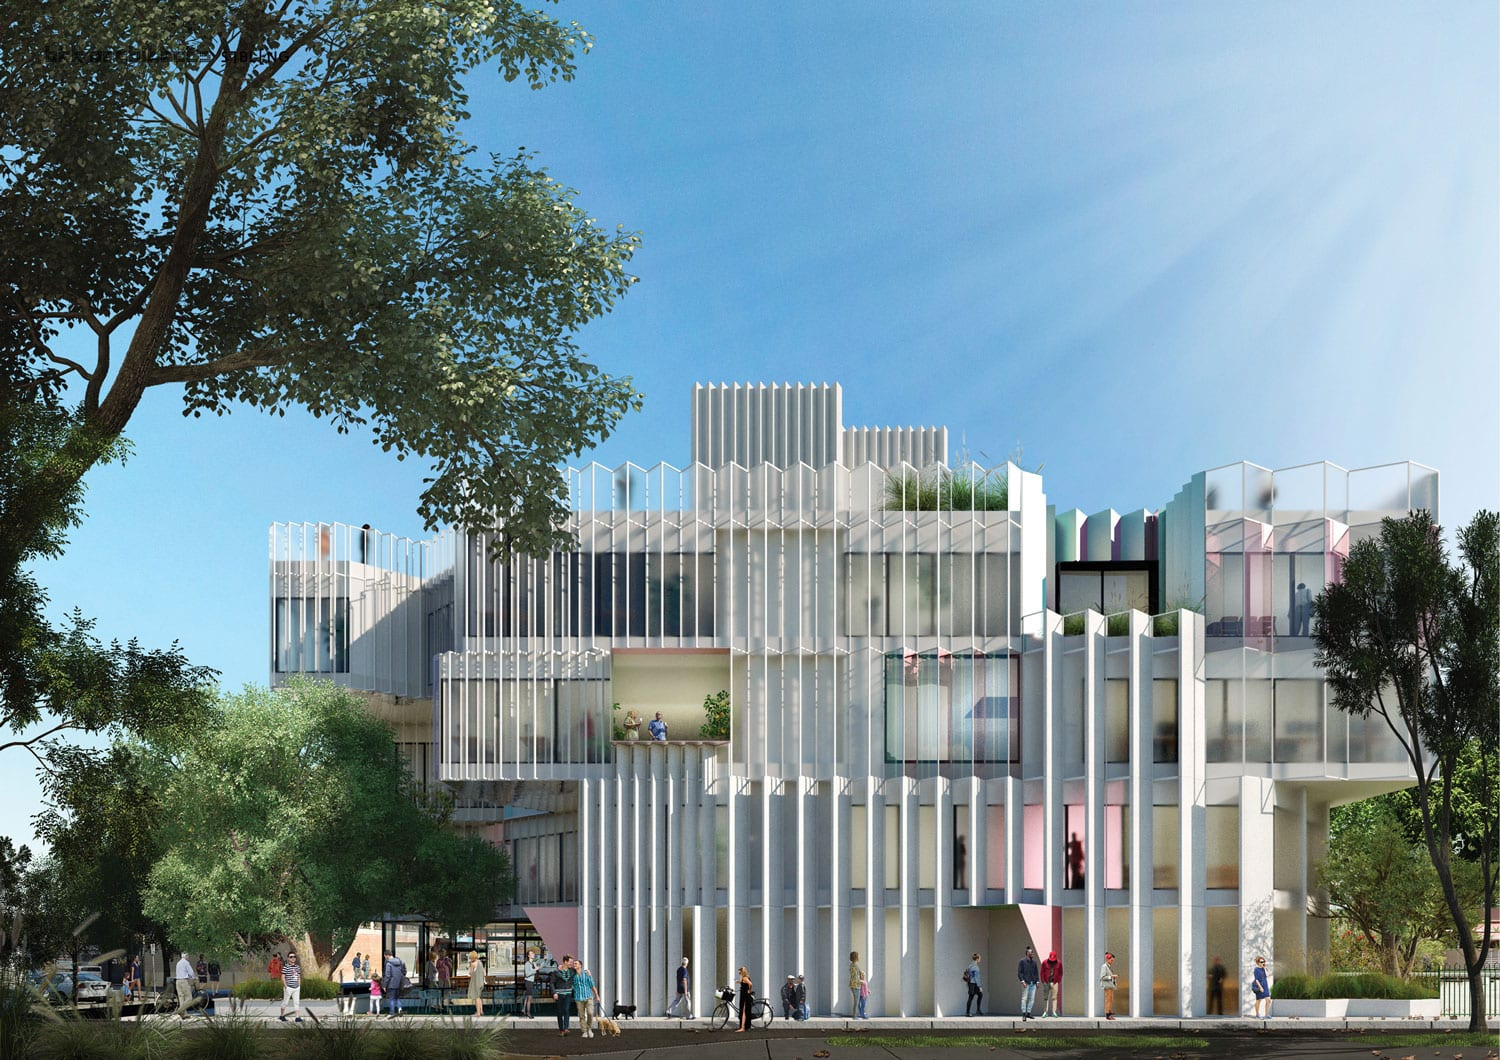 Victorian Pride Centre by Sibling Architecture, Shortlisted entry in collaboration with BKK Architects | Yellowtrace